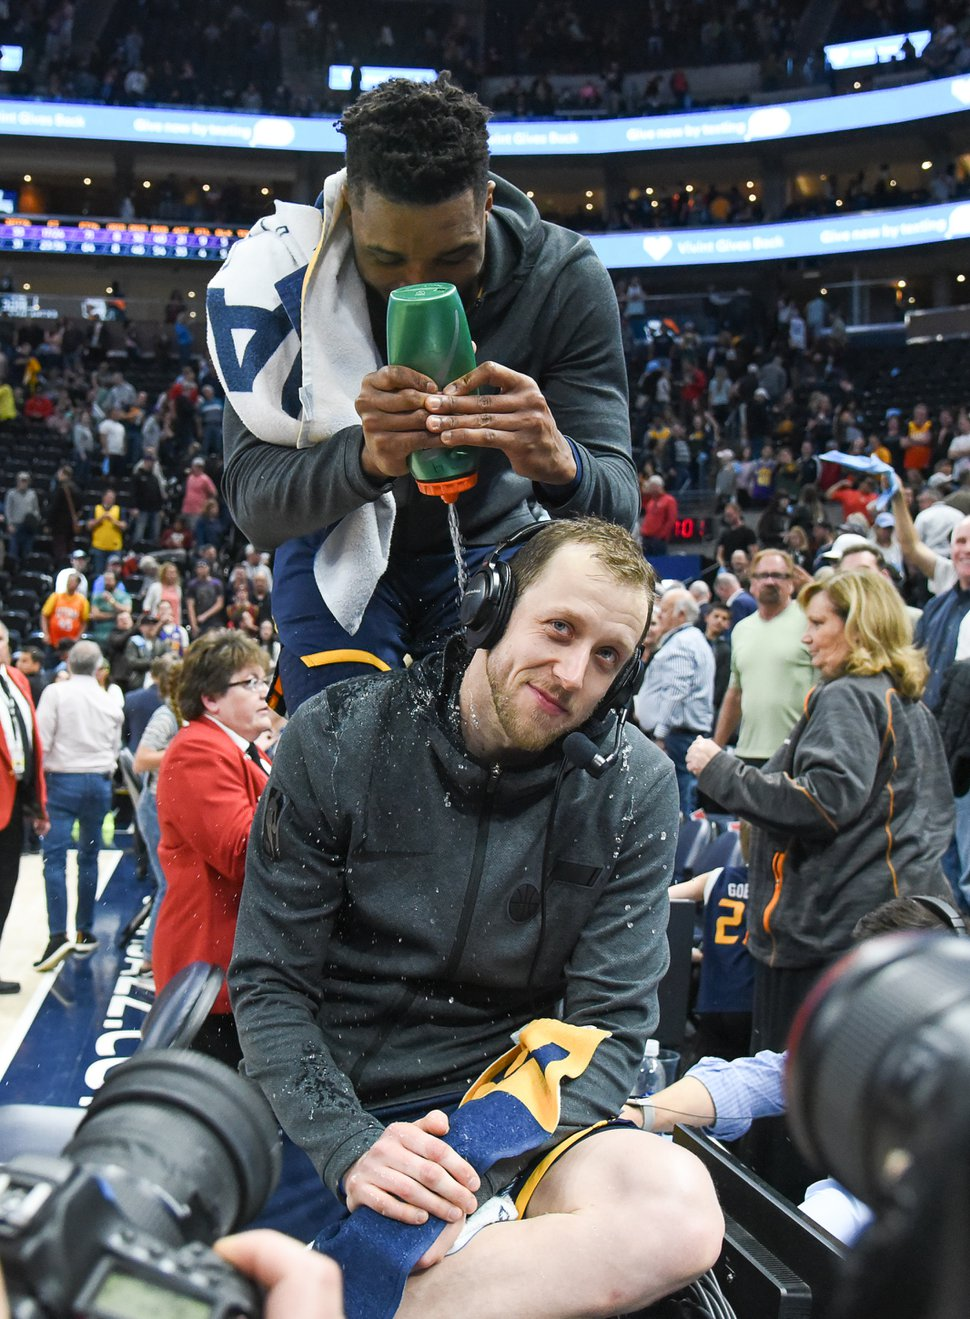 (Francisco Kjolseth | The Salt Lake Tribune) Utah Jazz guard Donovan Mitchell (45) sprays water on Utah Jazz forward Joe Ingles (2) as he does an interview to raise awareness for autism following their game against the Los Angeles Lakers in their NBA game at Vivint Smart Home Arena Wed., March 27, 2019, in Salt Lake City. Ingles son was diagnosed with autism and the Jazz have come out in support in a big way.